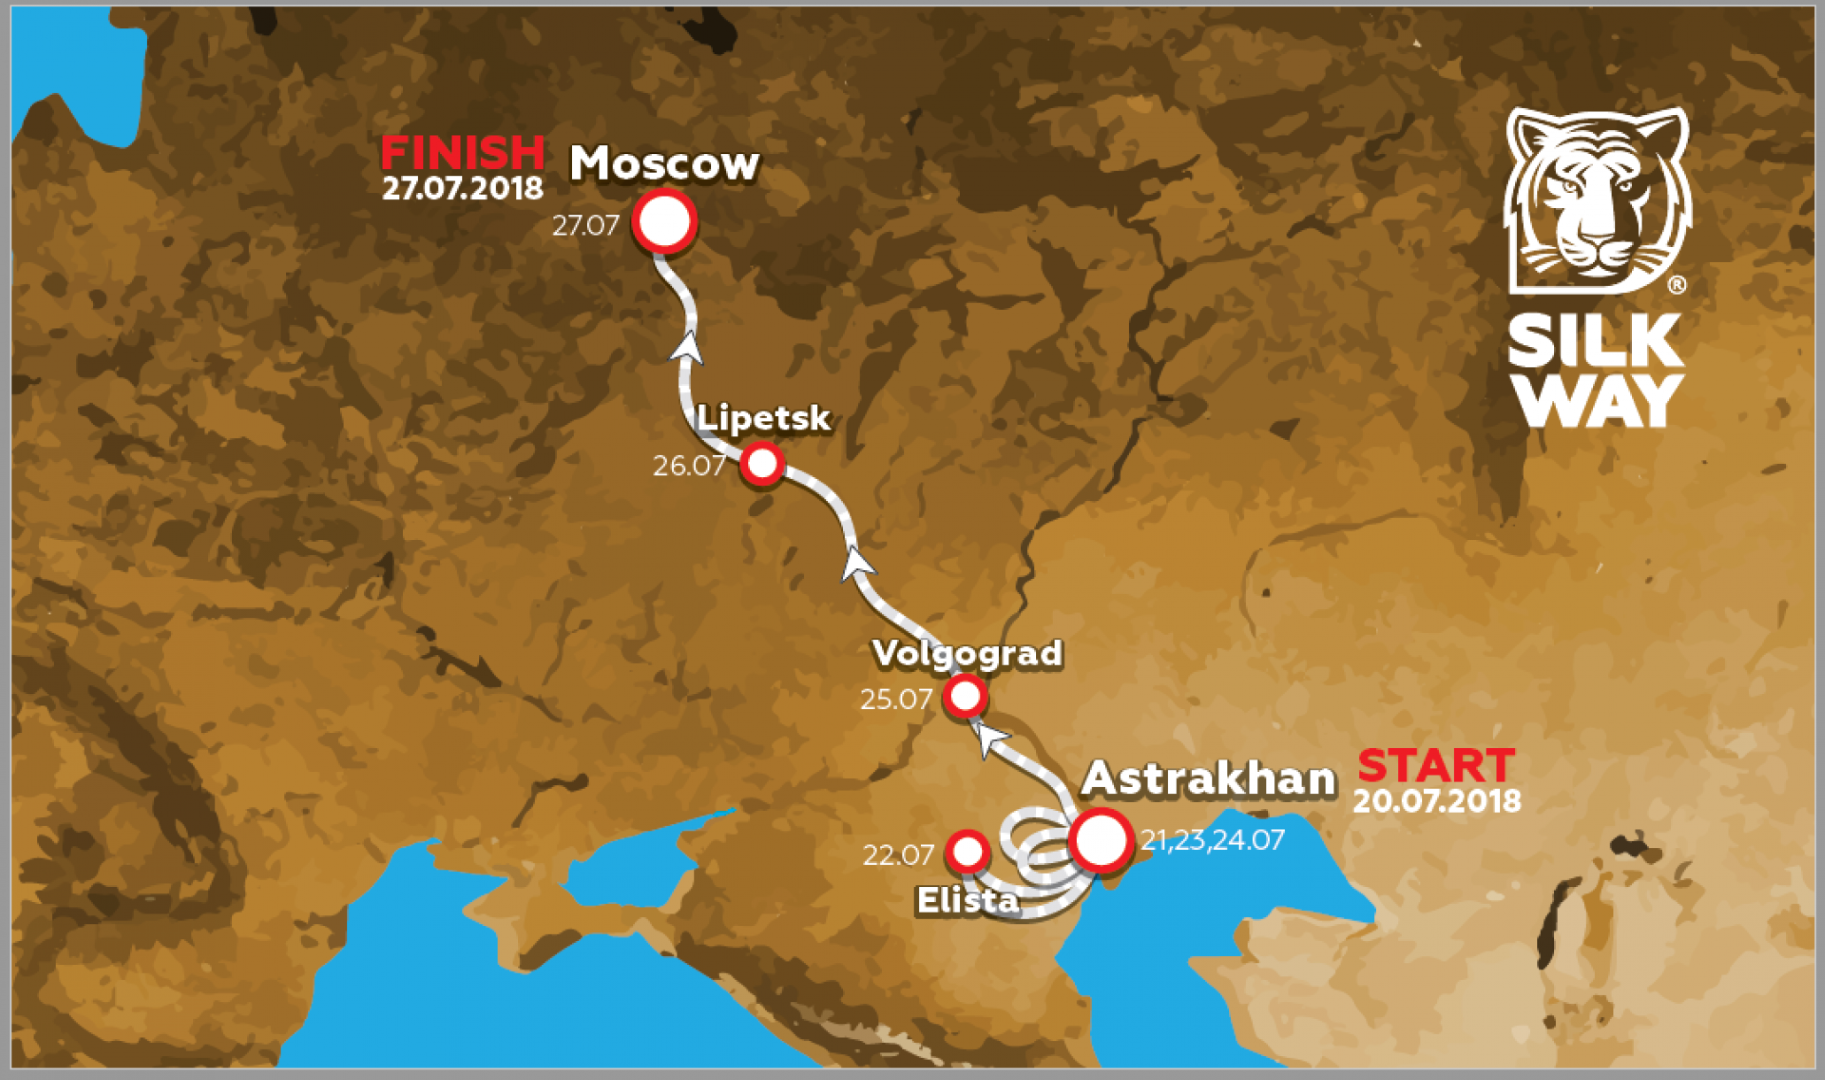 SILKWAYRALLY 2018: MODIFICATION DU PARCOURS